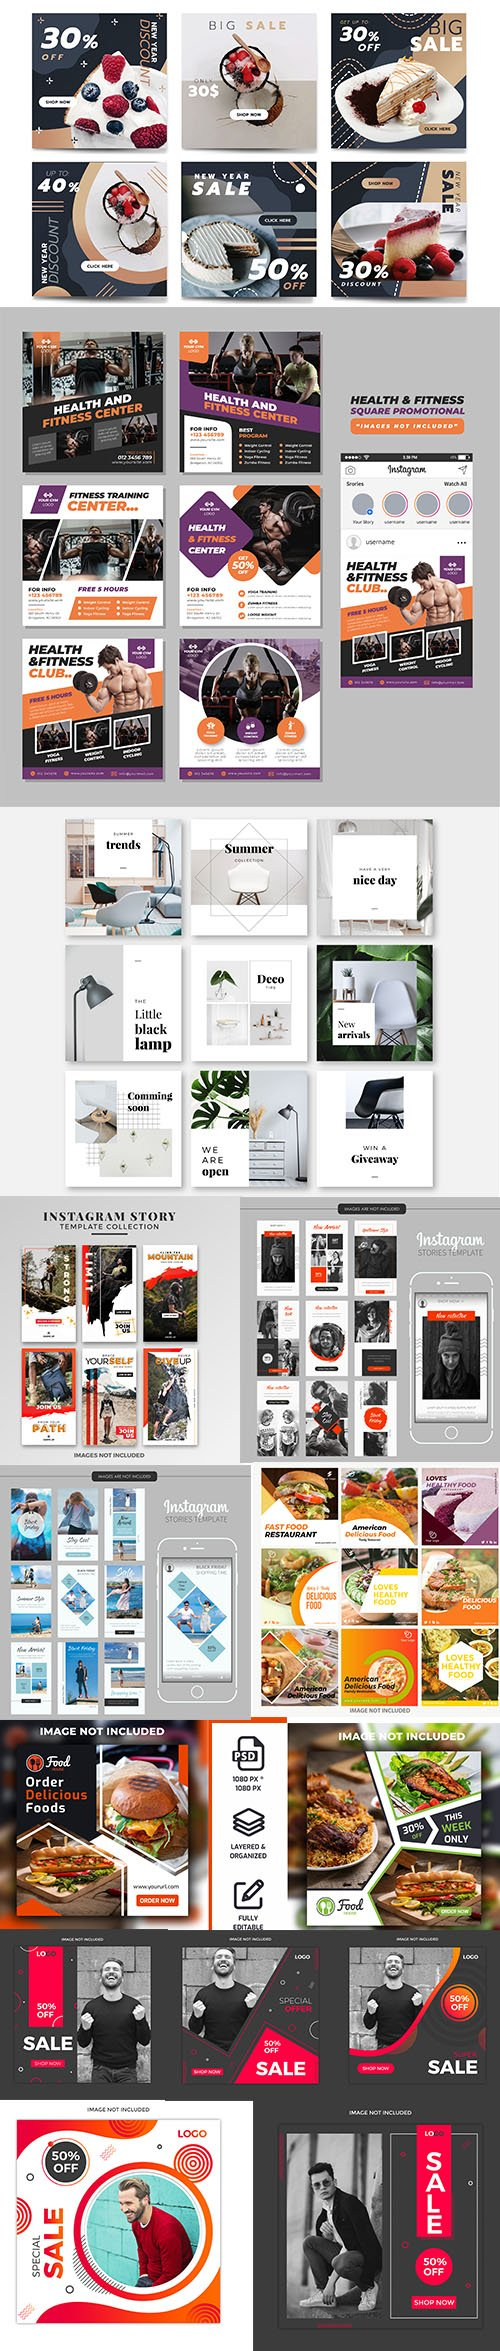 Social Media Banner Template and Instagram Stories